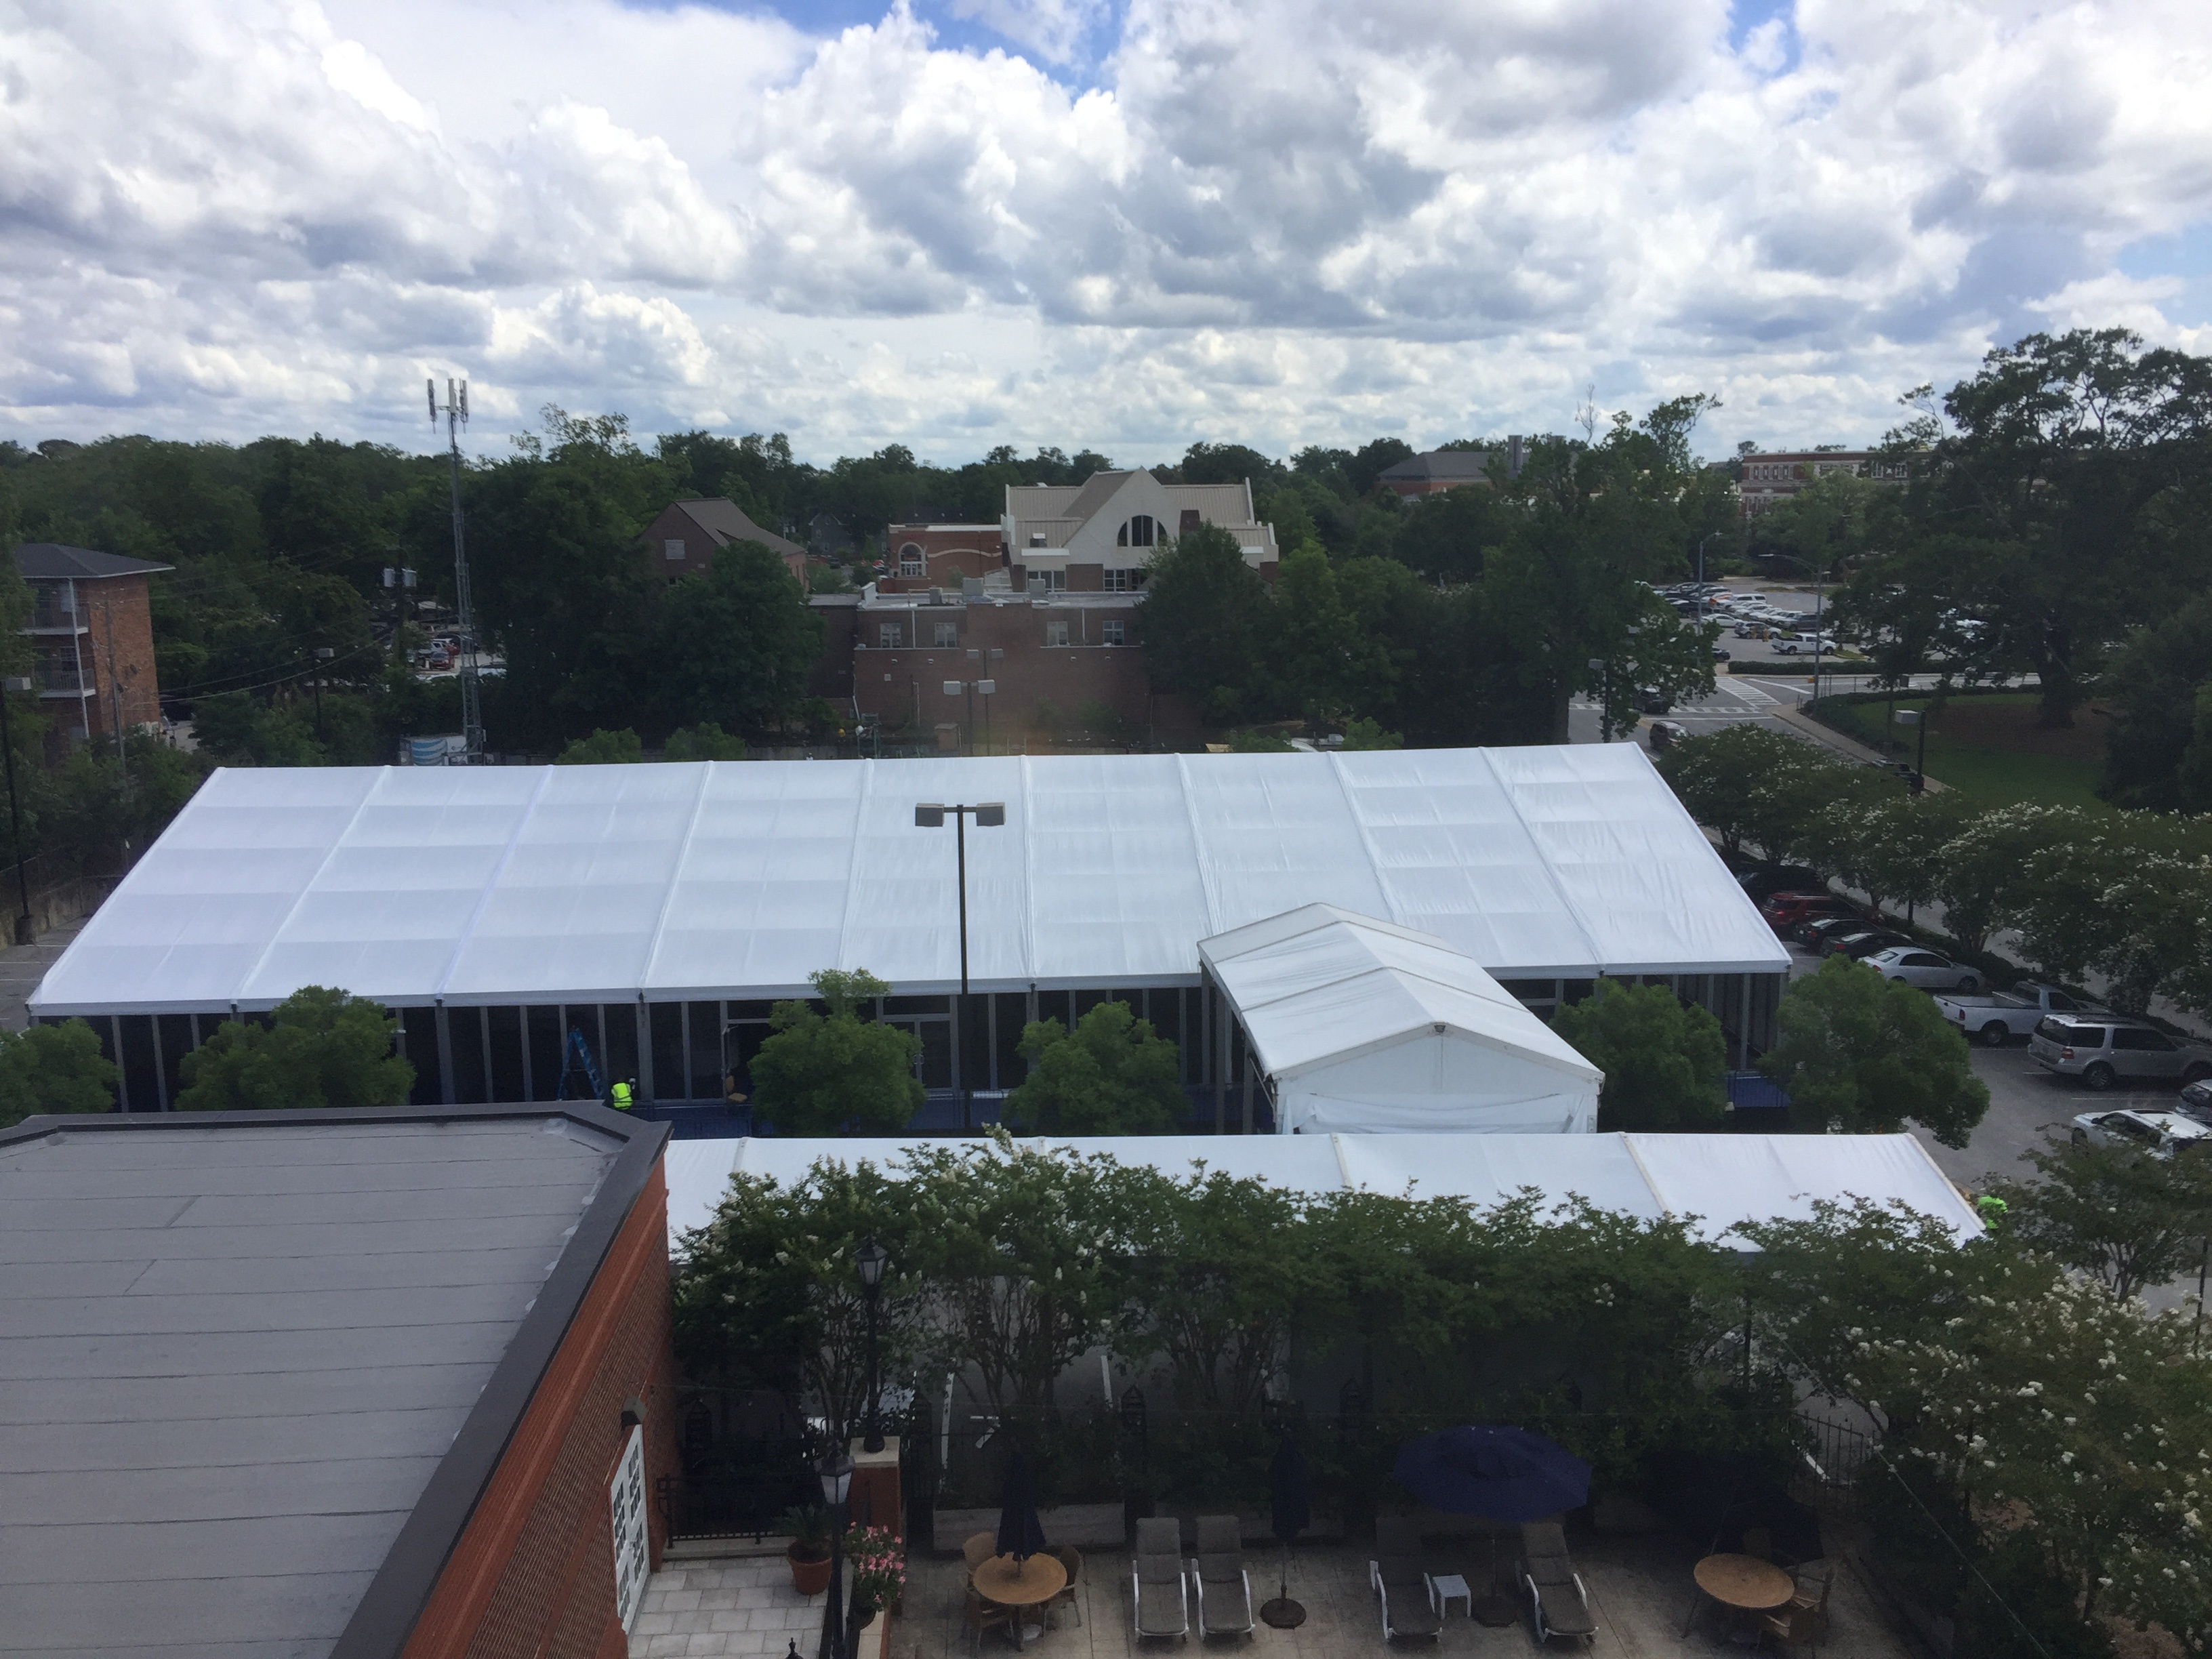 Outside view of elegant conference center tent.